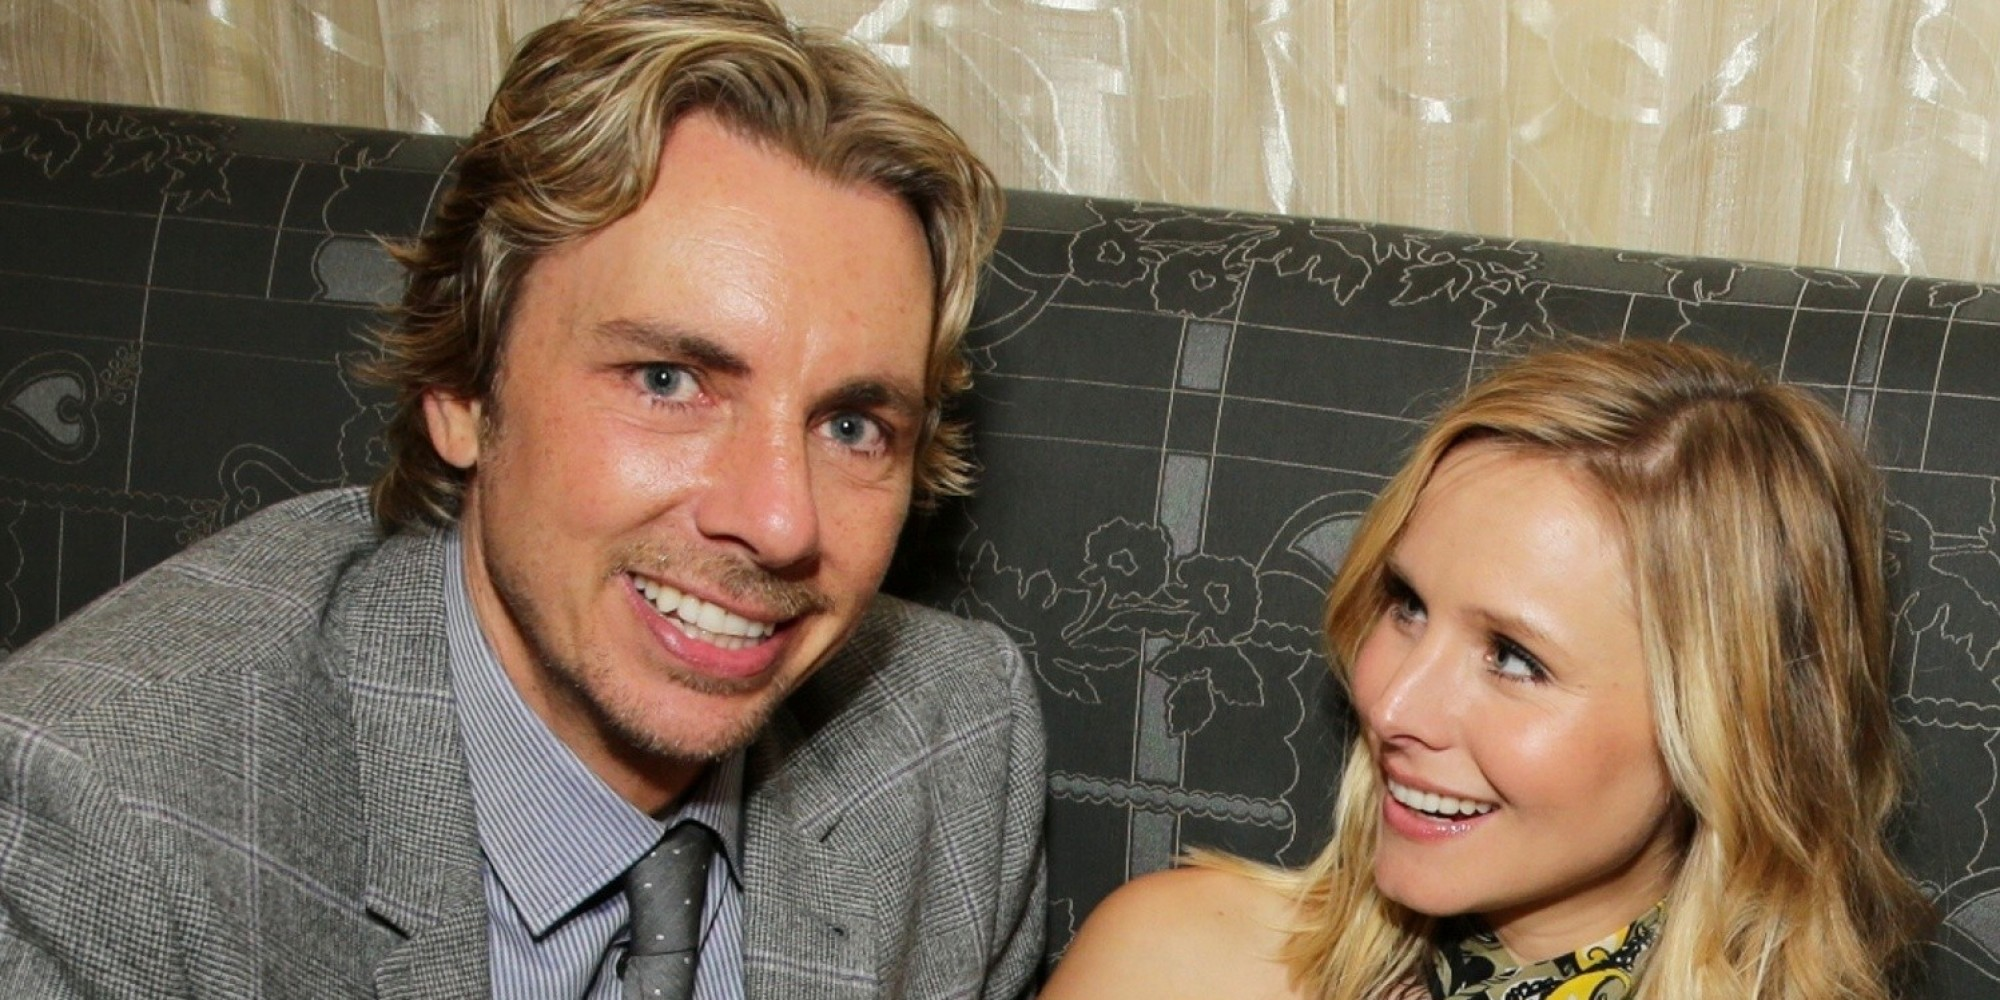 craig ferguson and kristen bell relationship